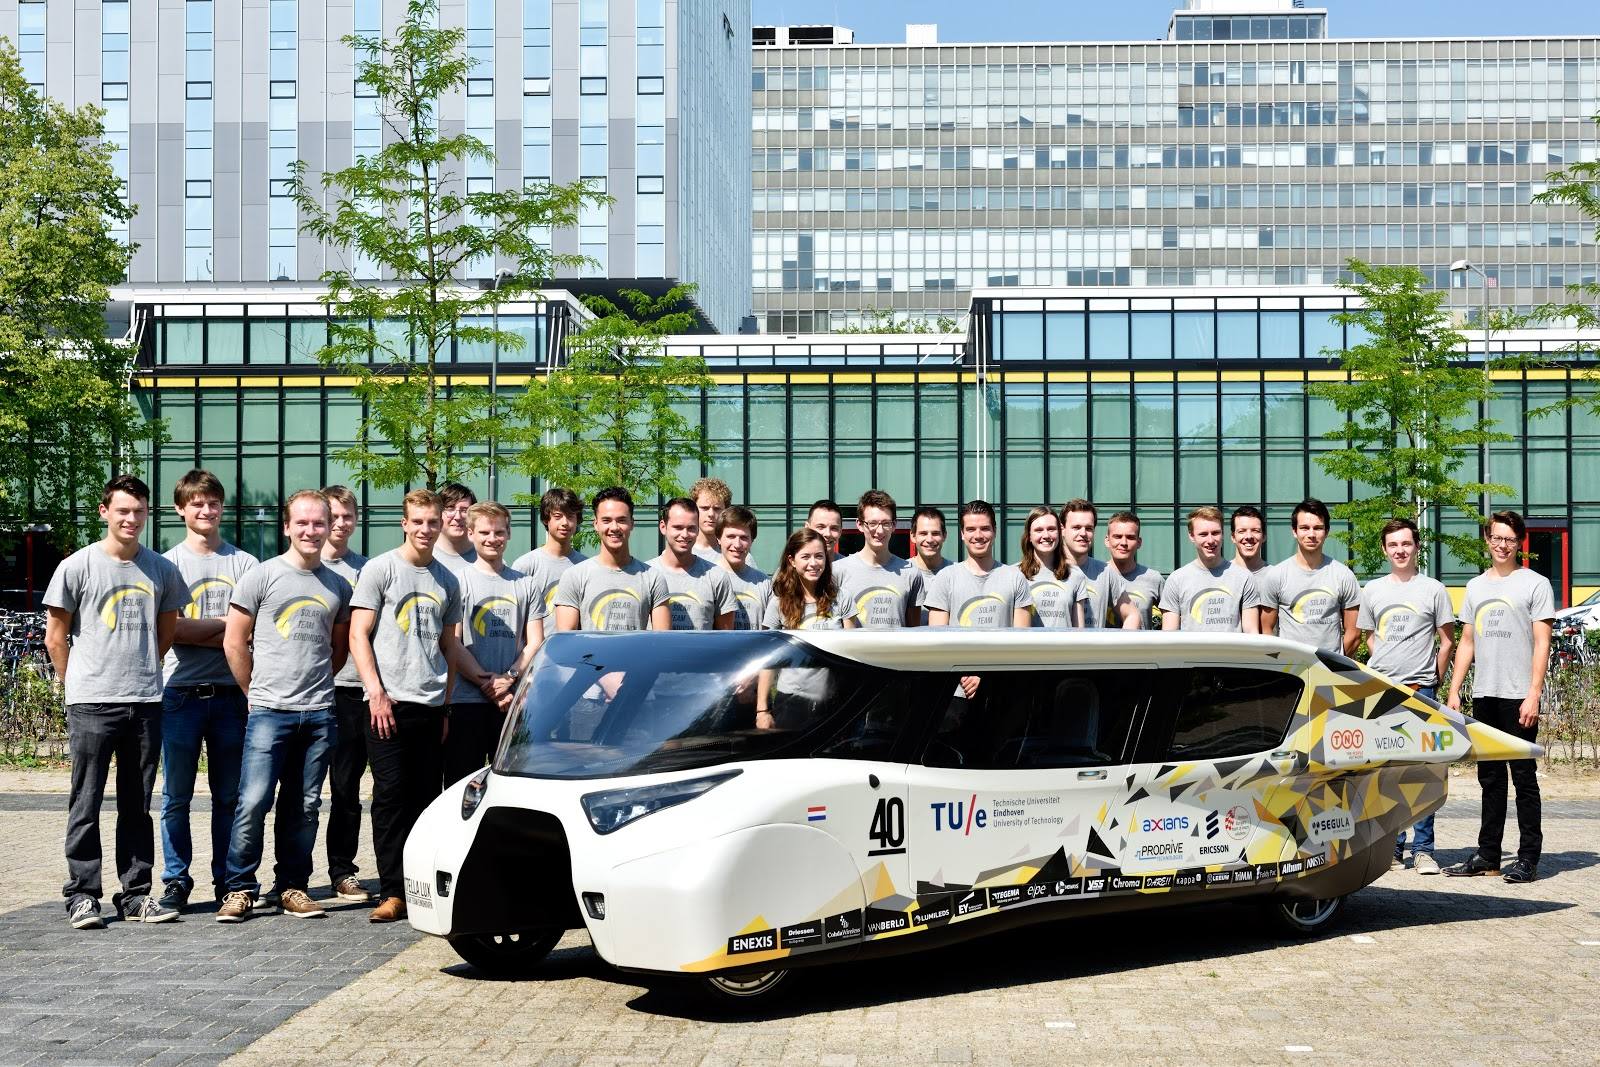 Stella Lux - A solar powered family car invented by a team of Dutch ...